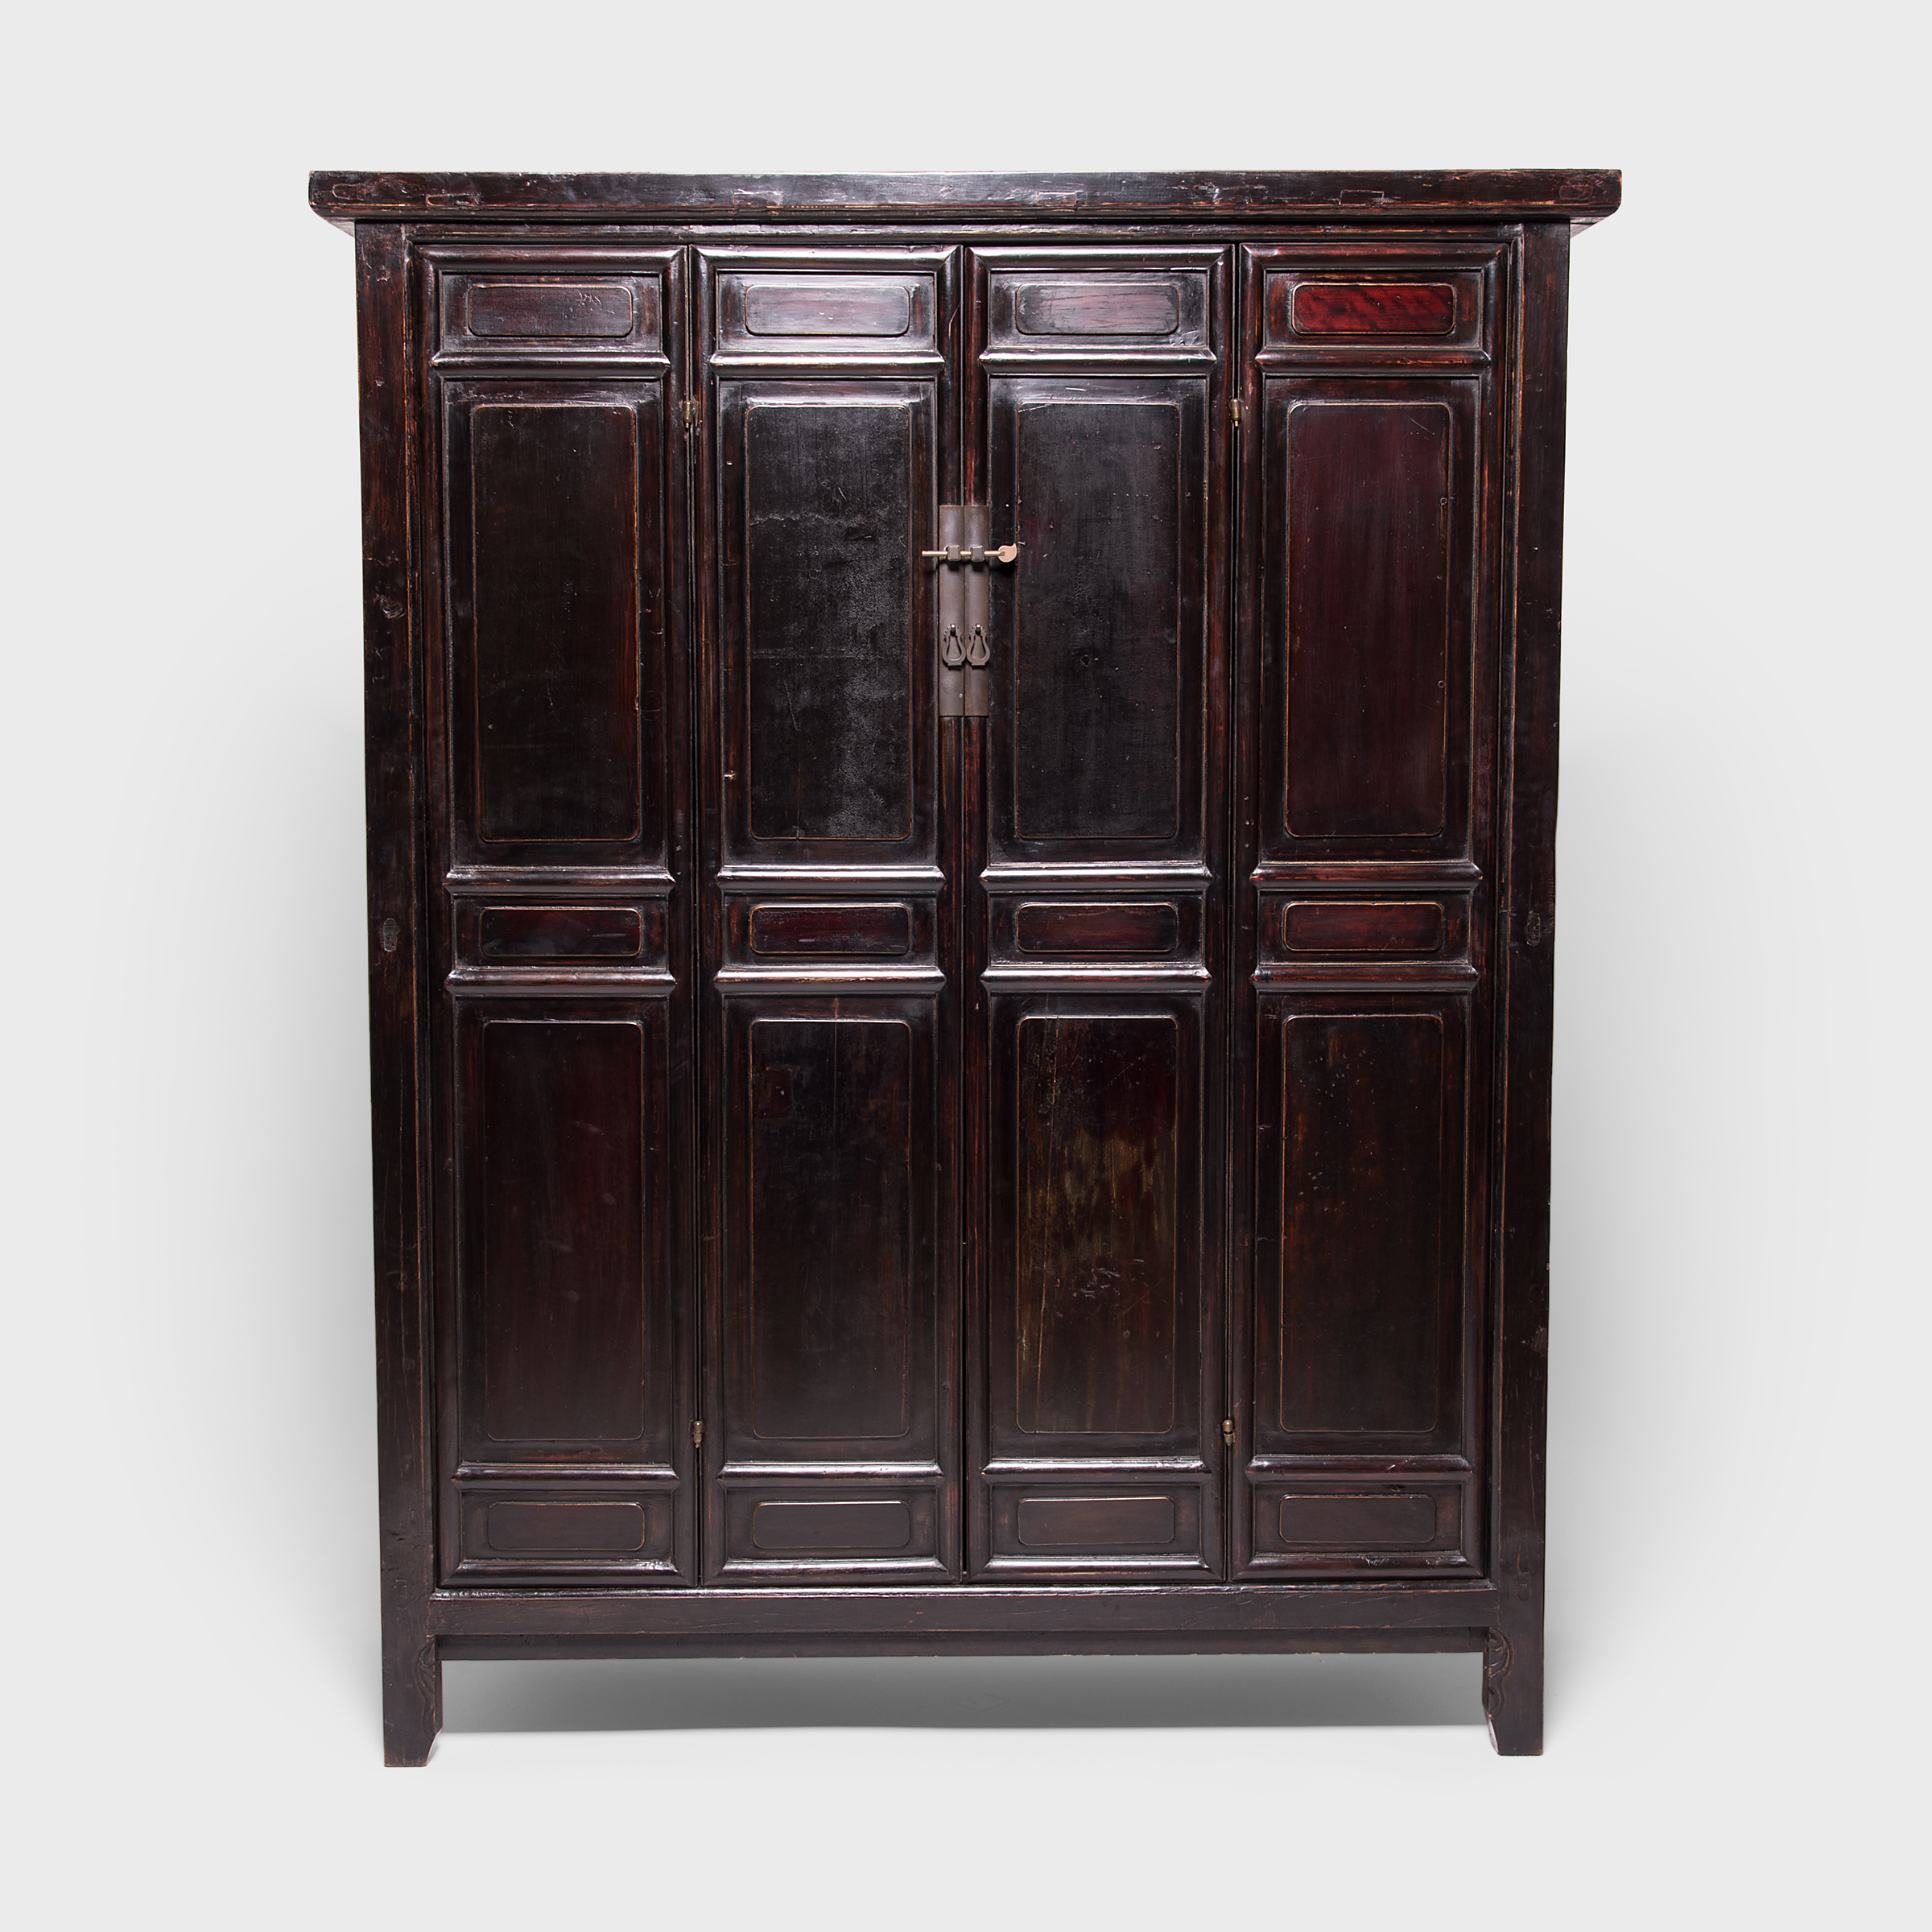 Crackle Kitchen Cabinets: Browse Or Buy At PAGODA RED